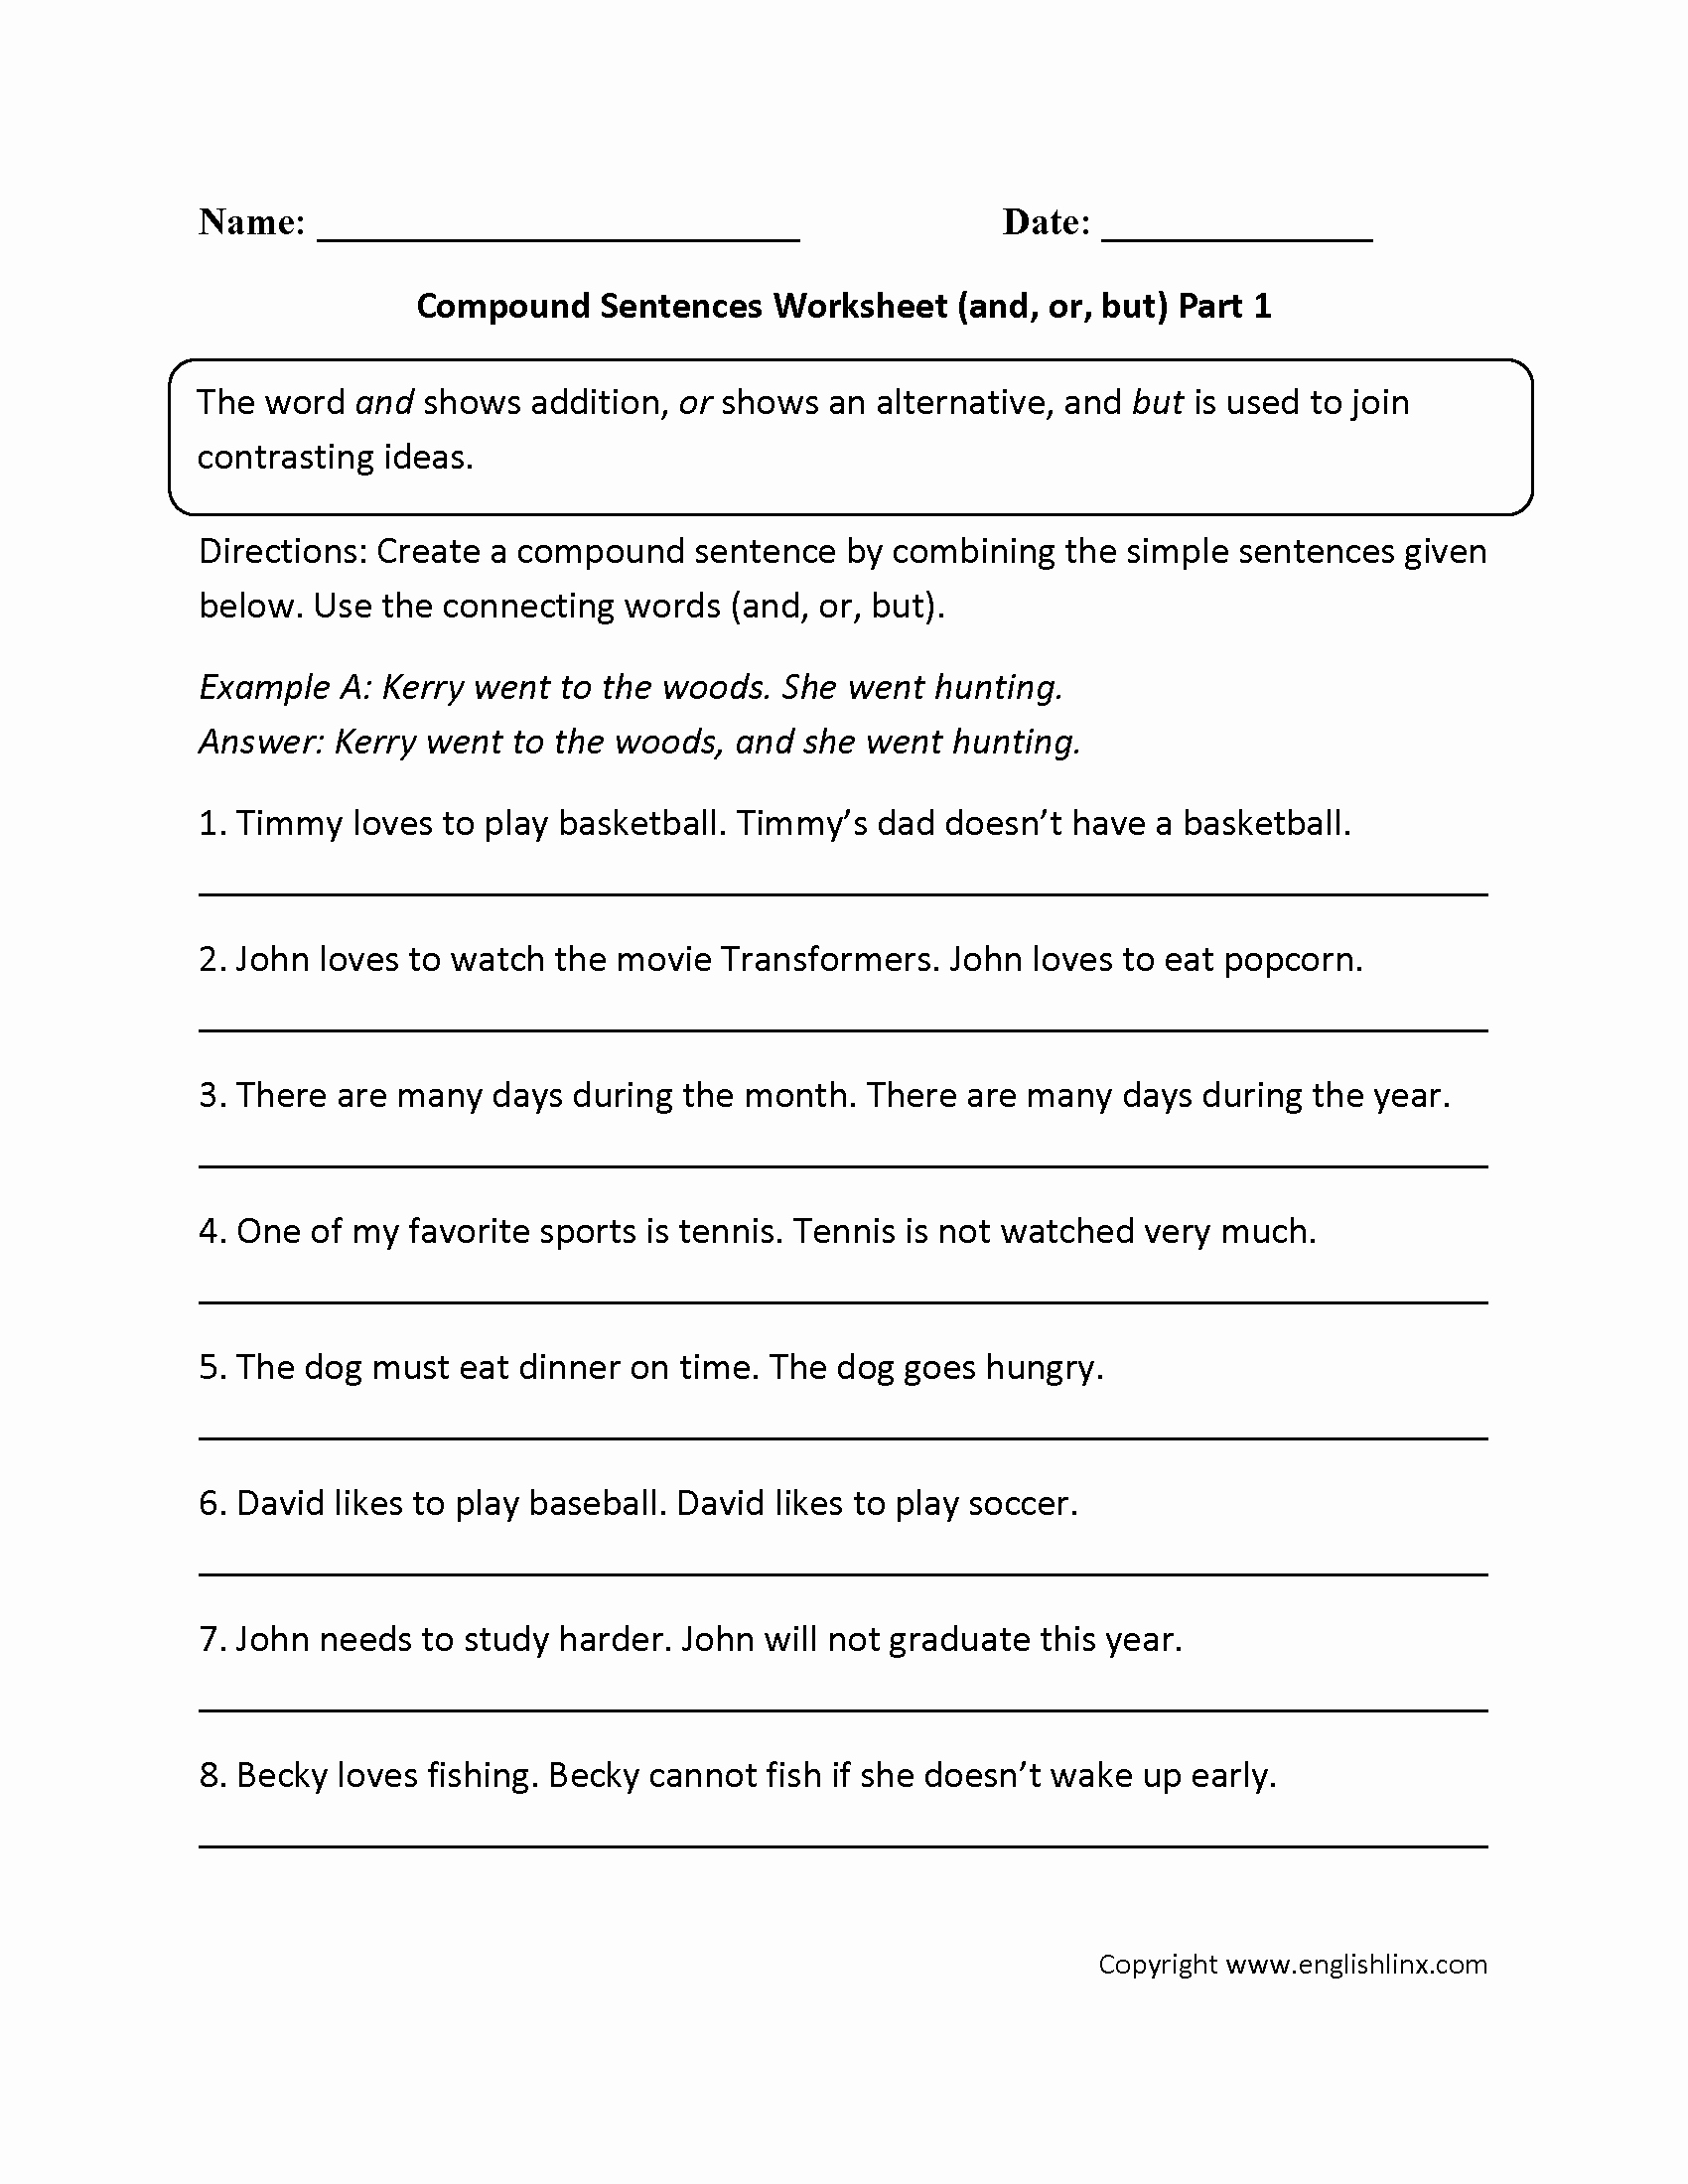 Simple Compound Complex Sentences Worksheet Lovely and or and but Pound Sentences Worksheet